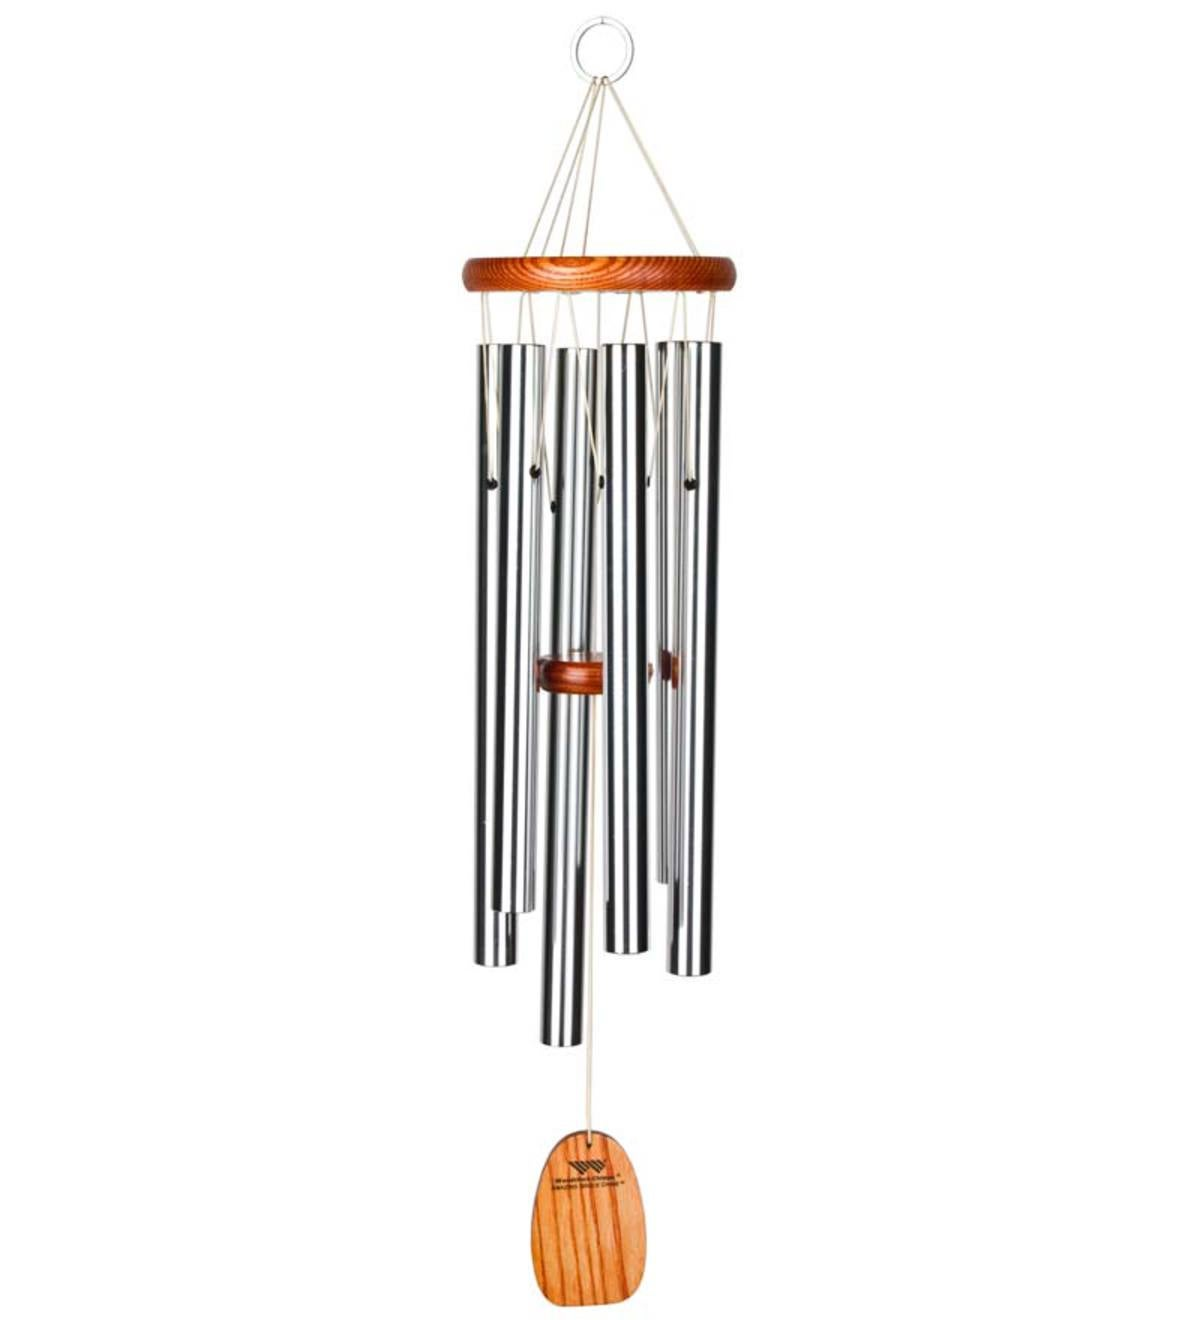 Medium Anodized Aluminum Amazing Grace Wind Chime With Ash Wood Disk And Wind Catcher